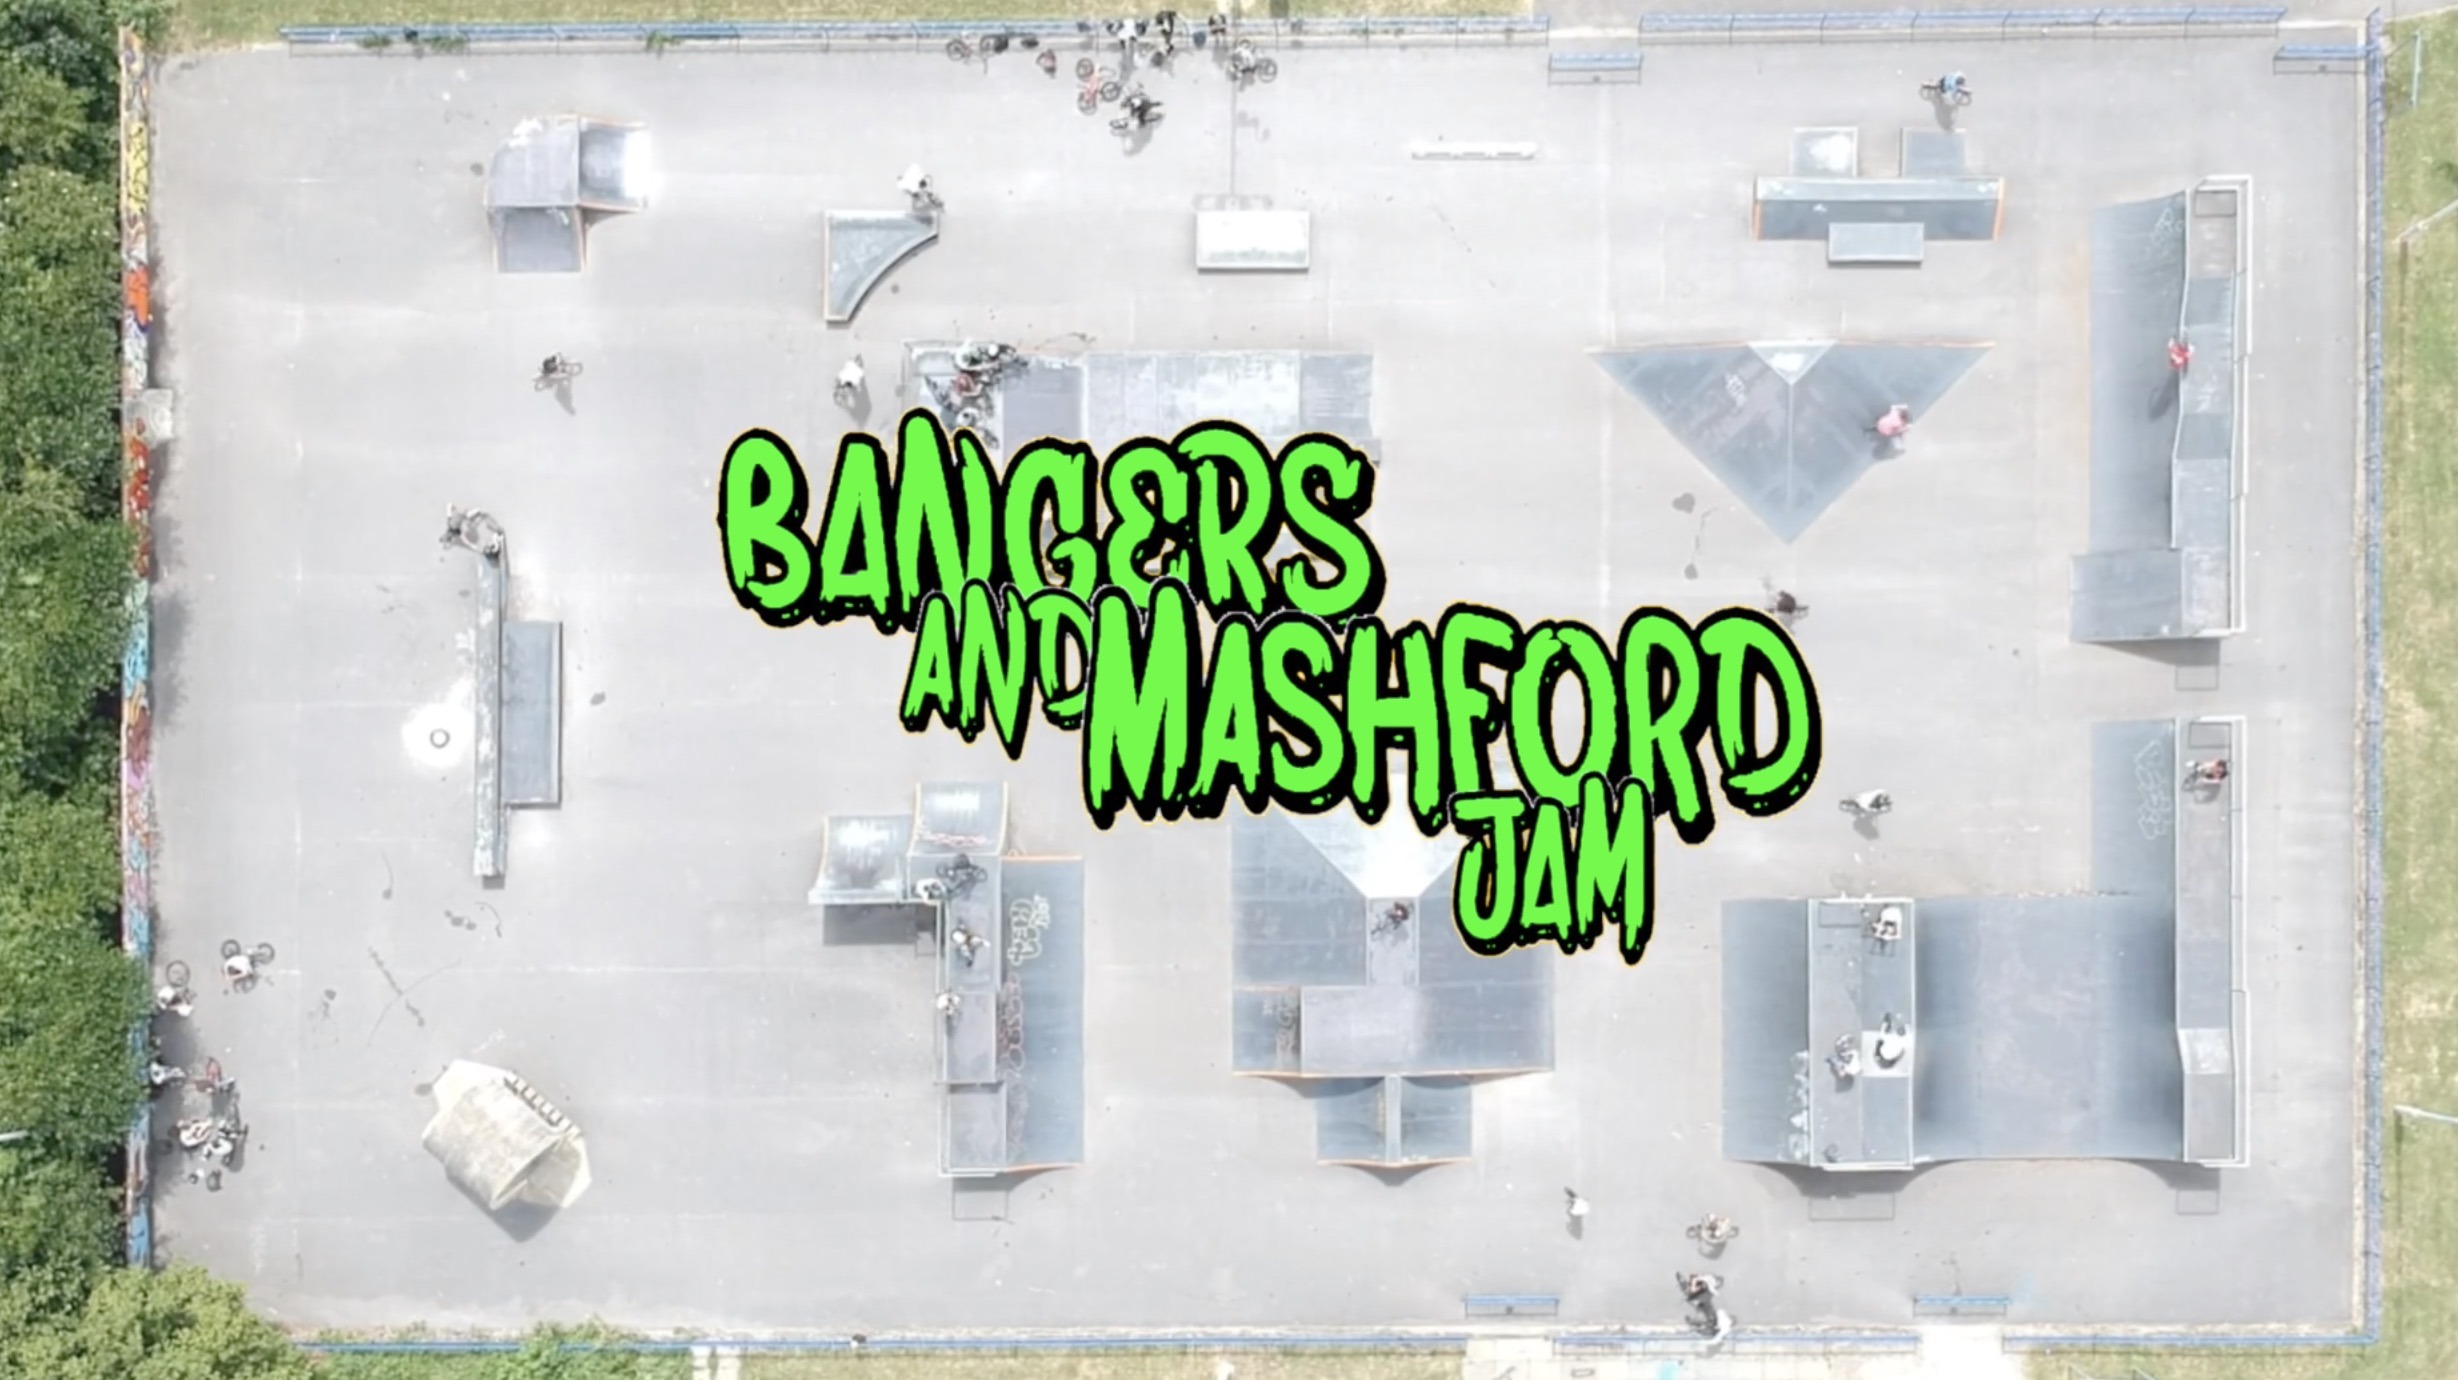 BANGERS AND MASHFORD JAM: July 2019 Jam Edit